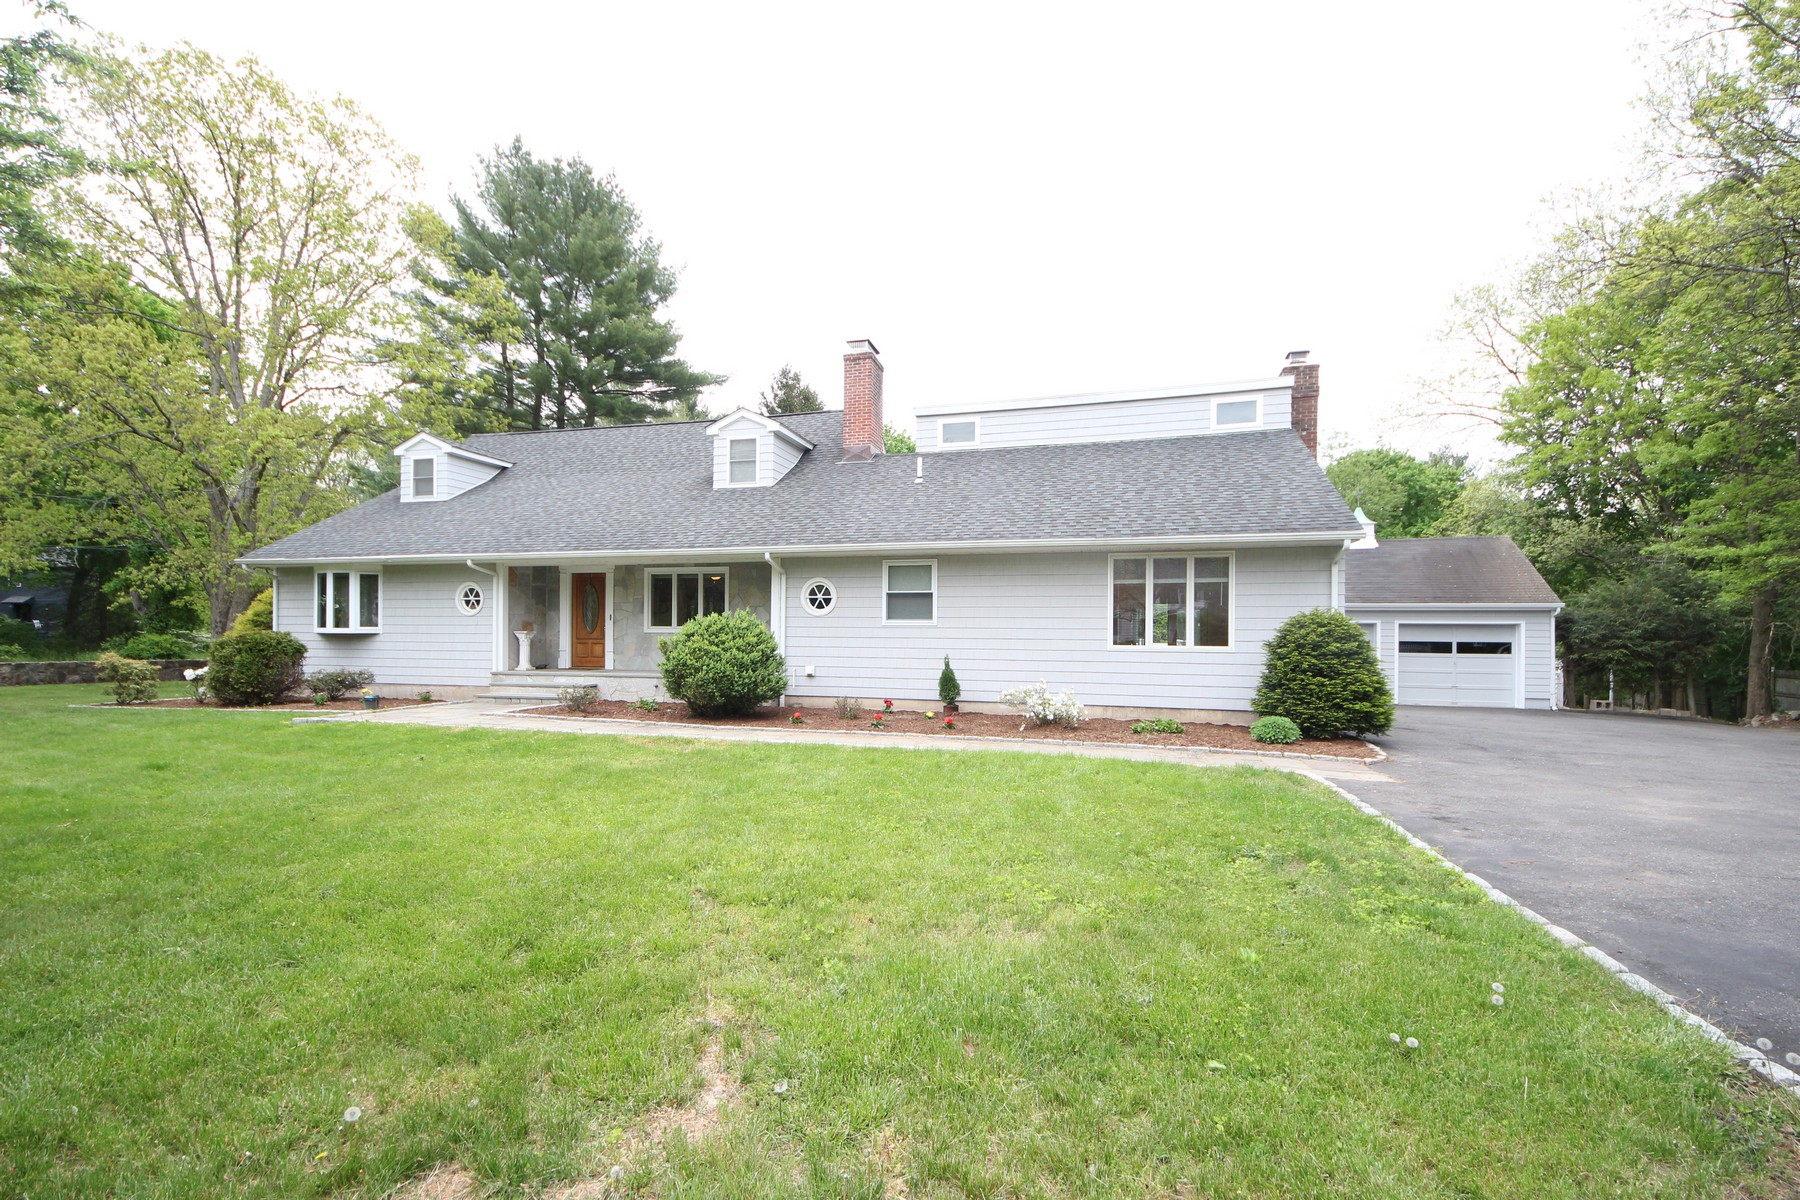 Single Family Home for Sale at Suburban Living At Its Best 267 Fillow Street Norwalk, Connecticut, 06850 United States